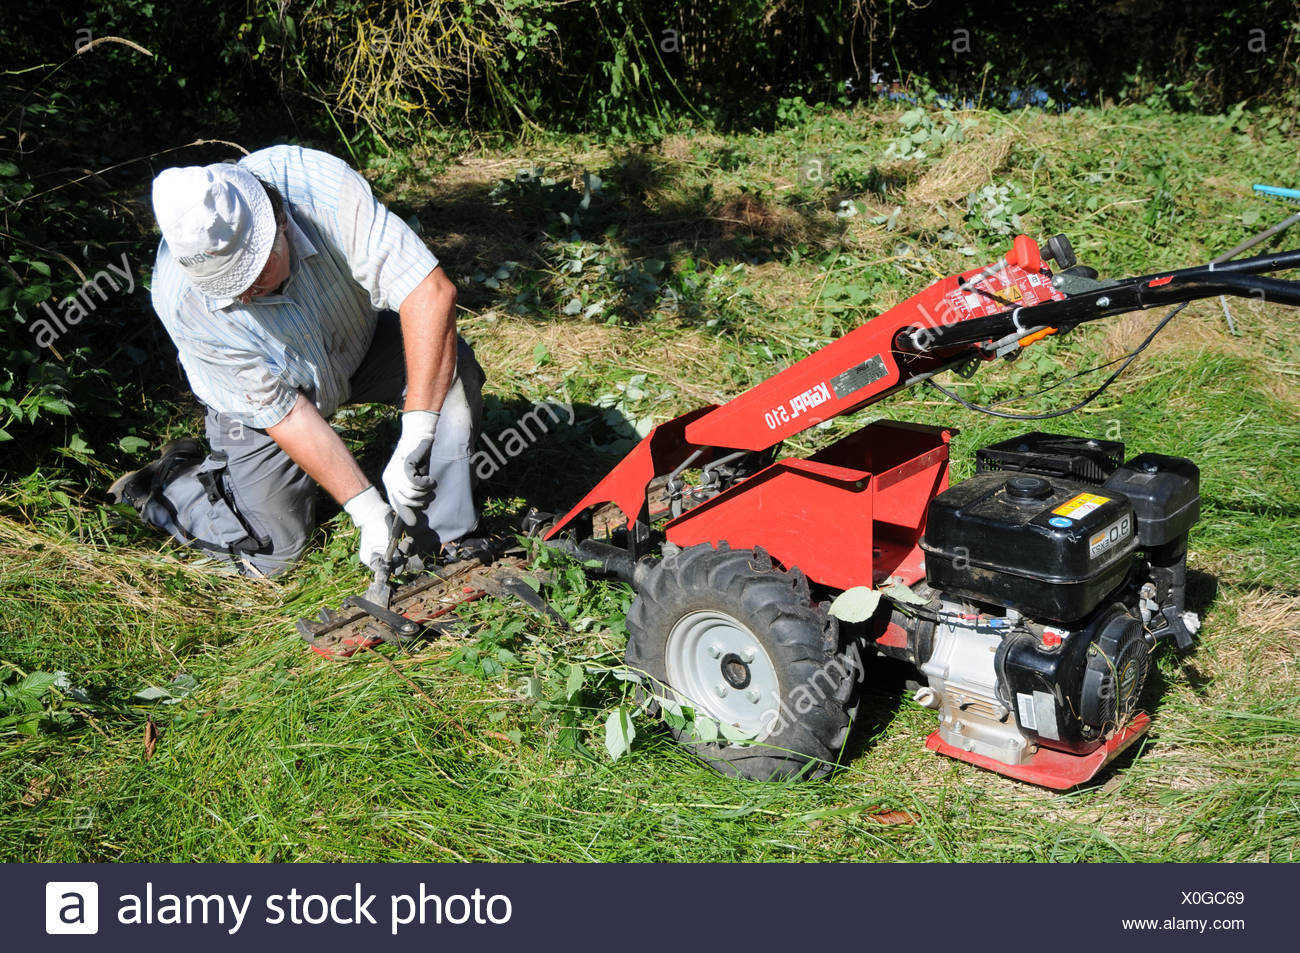 Sickle Bar Mower Stock Photos & Sickle Bar Mower Stock